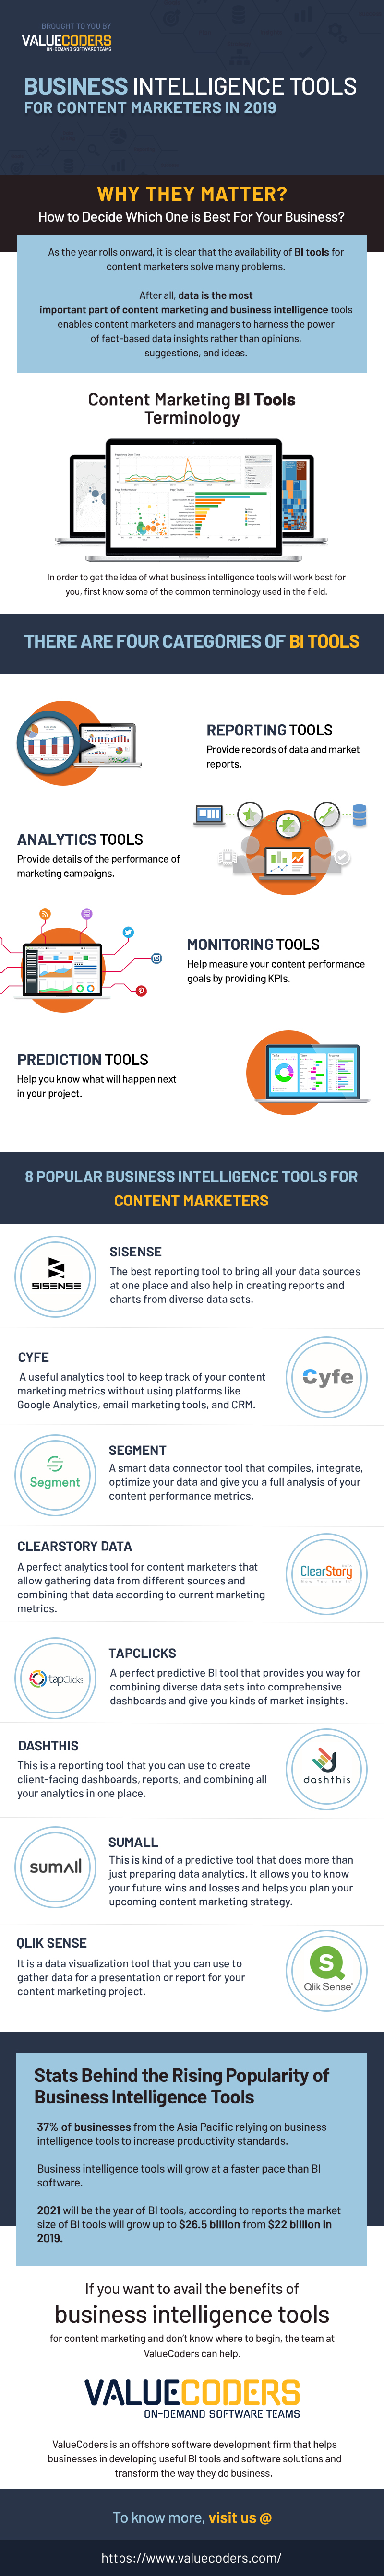 Business Intelligence Tools For Content Marketers in 2019